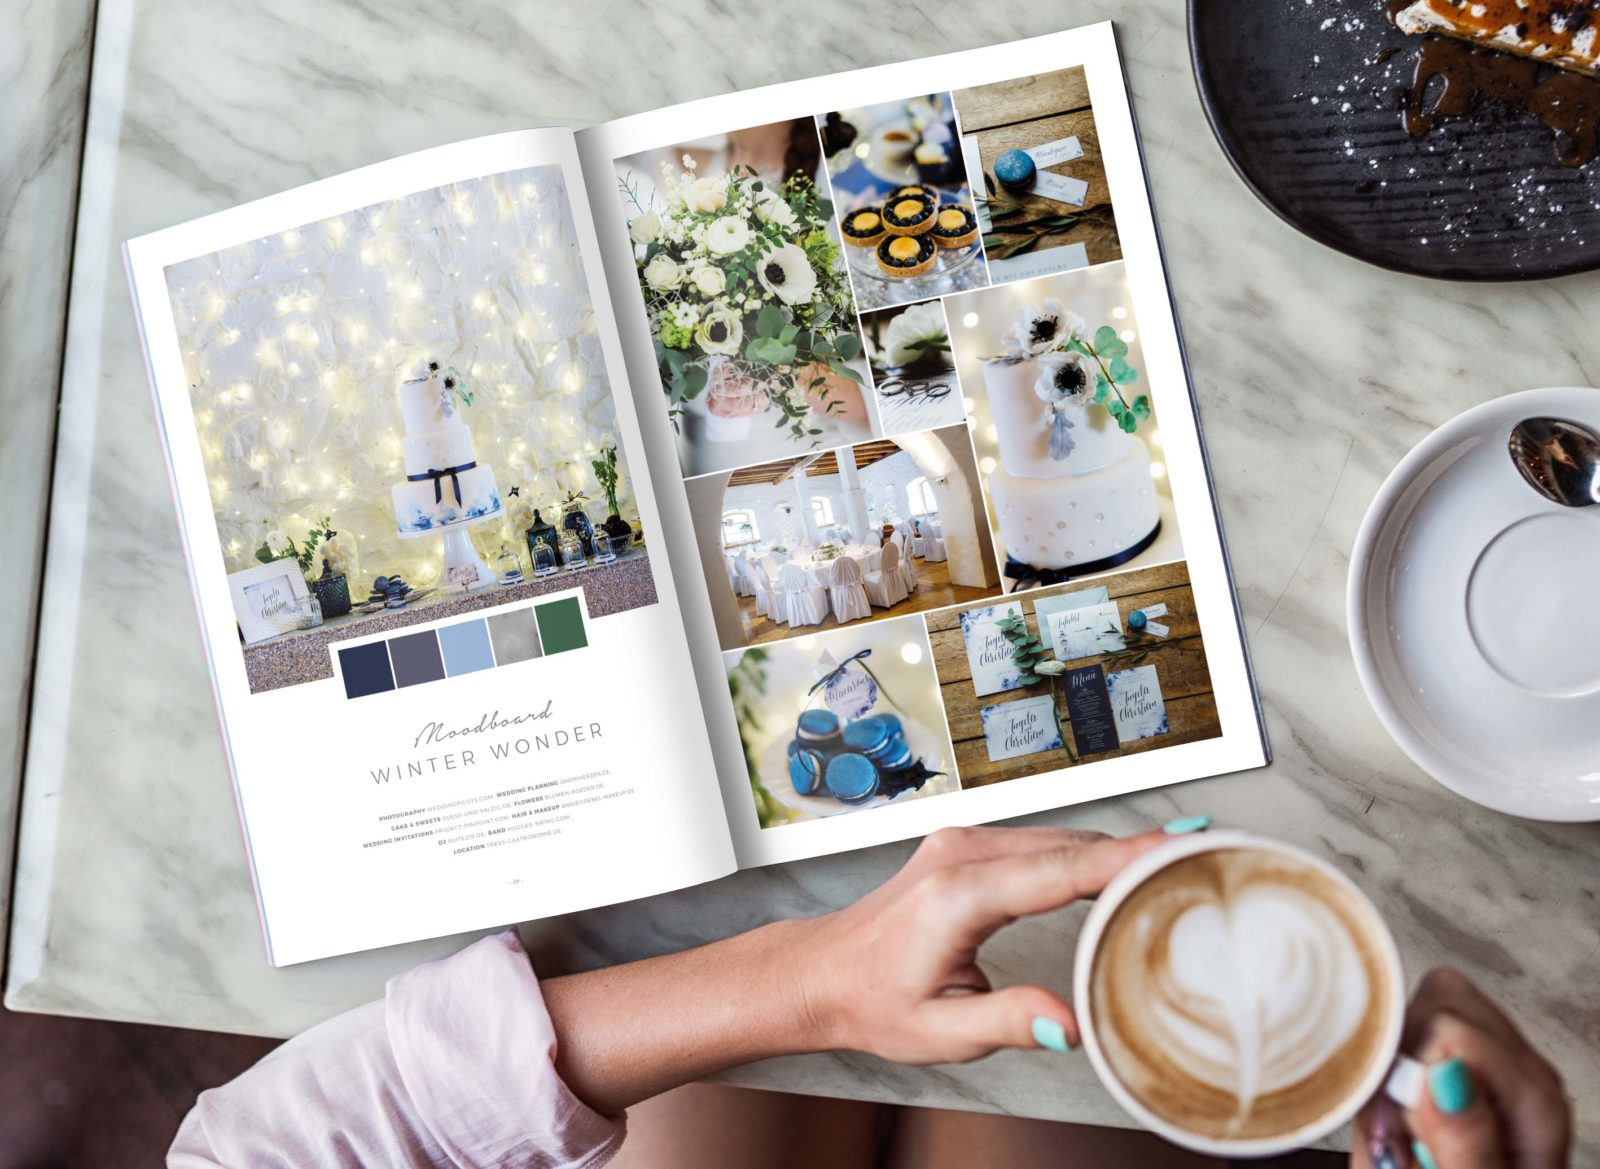 50 Moodboards  Color Concepts for Weddings meine Buchempfehlung   Backlinse